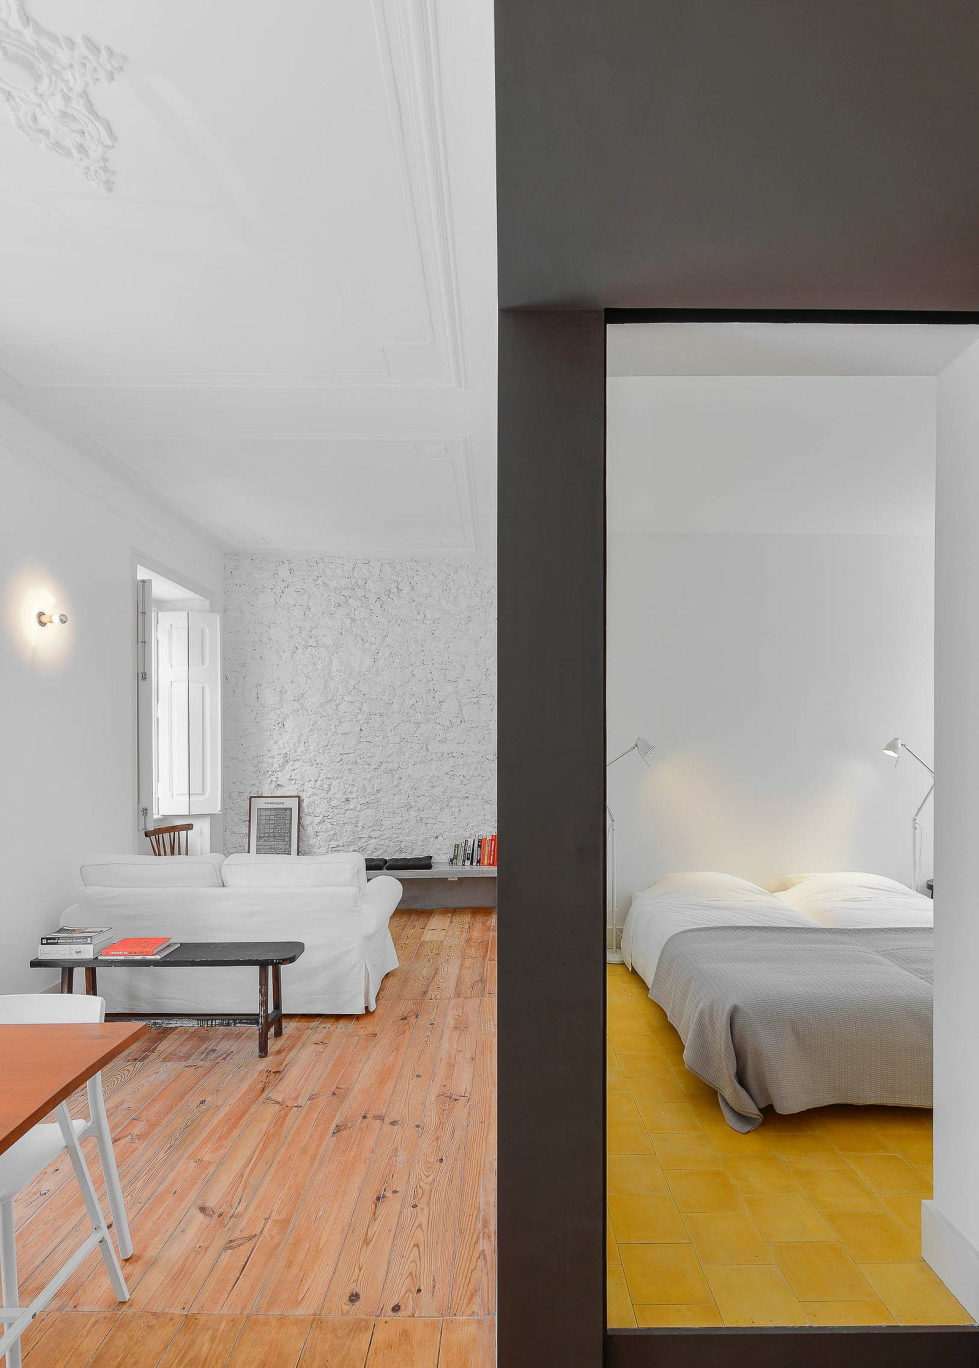 Casa Na Mouraria Apartment In Lisbon From Jose Andrade Rocha Studio 15